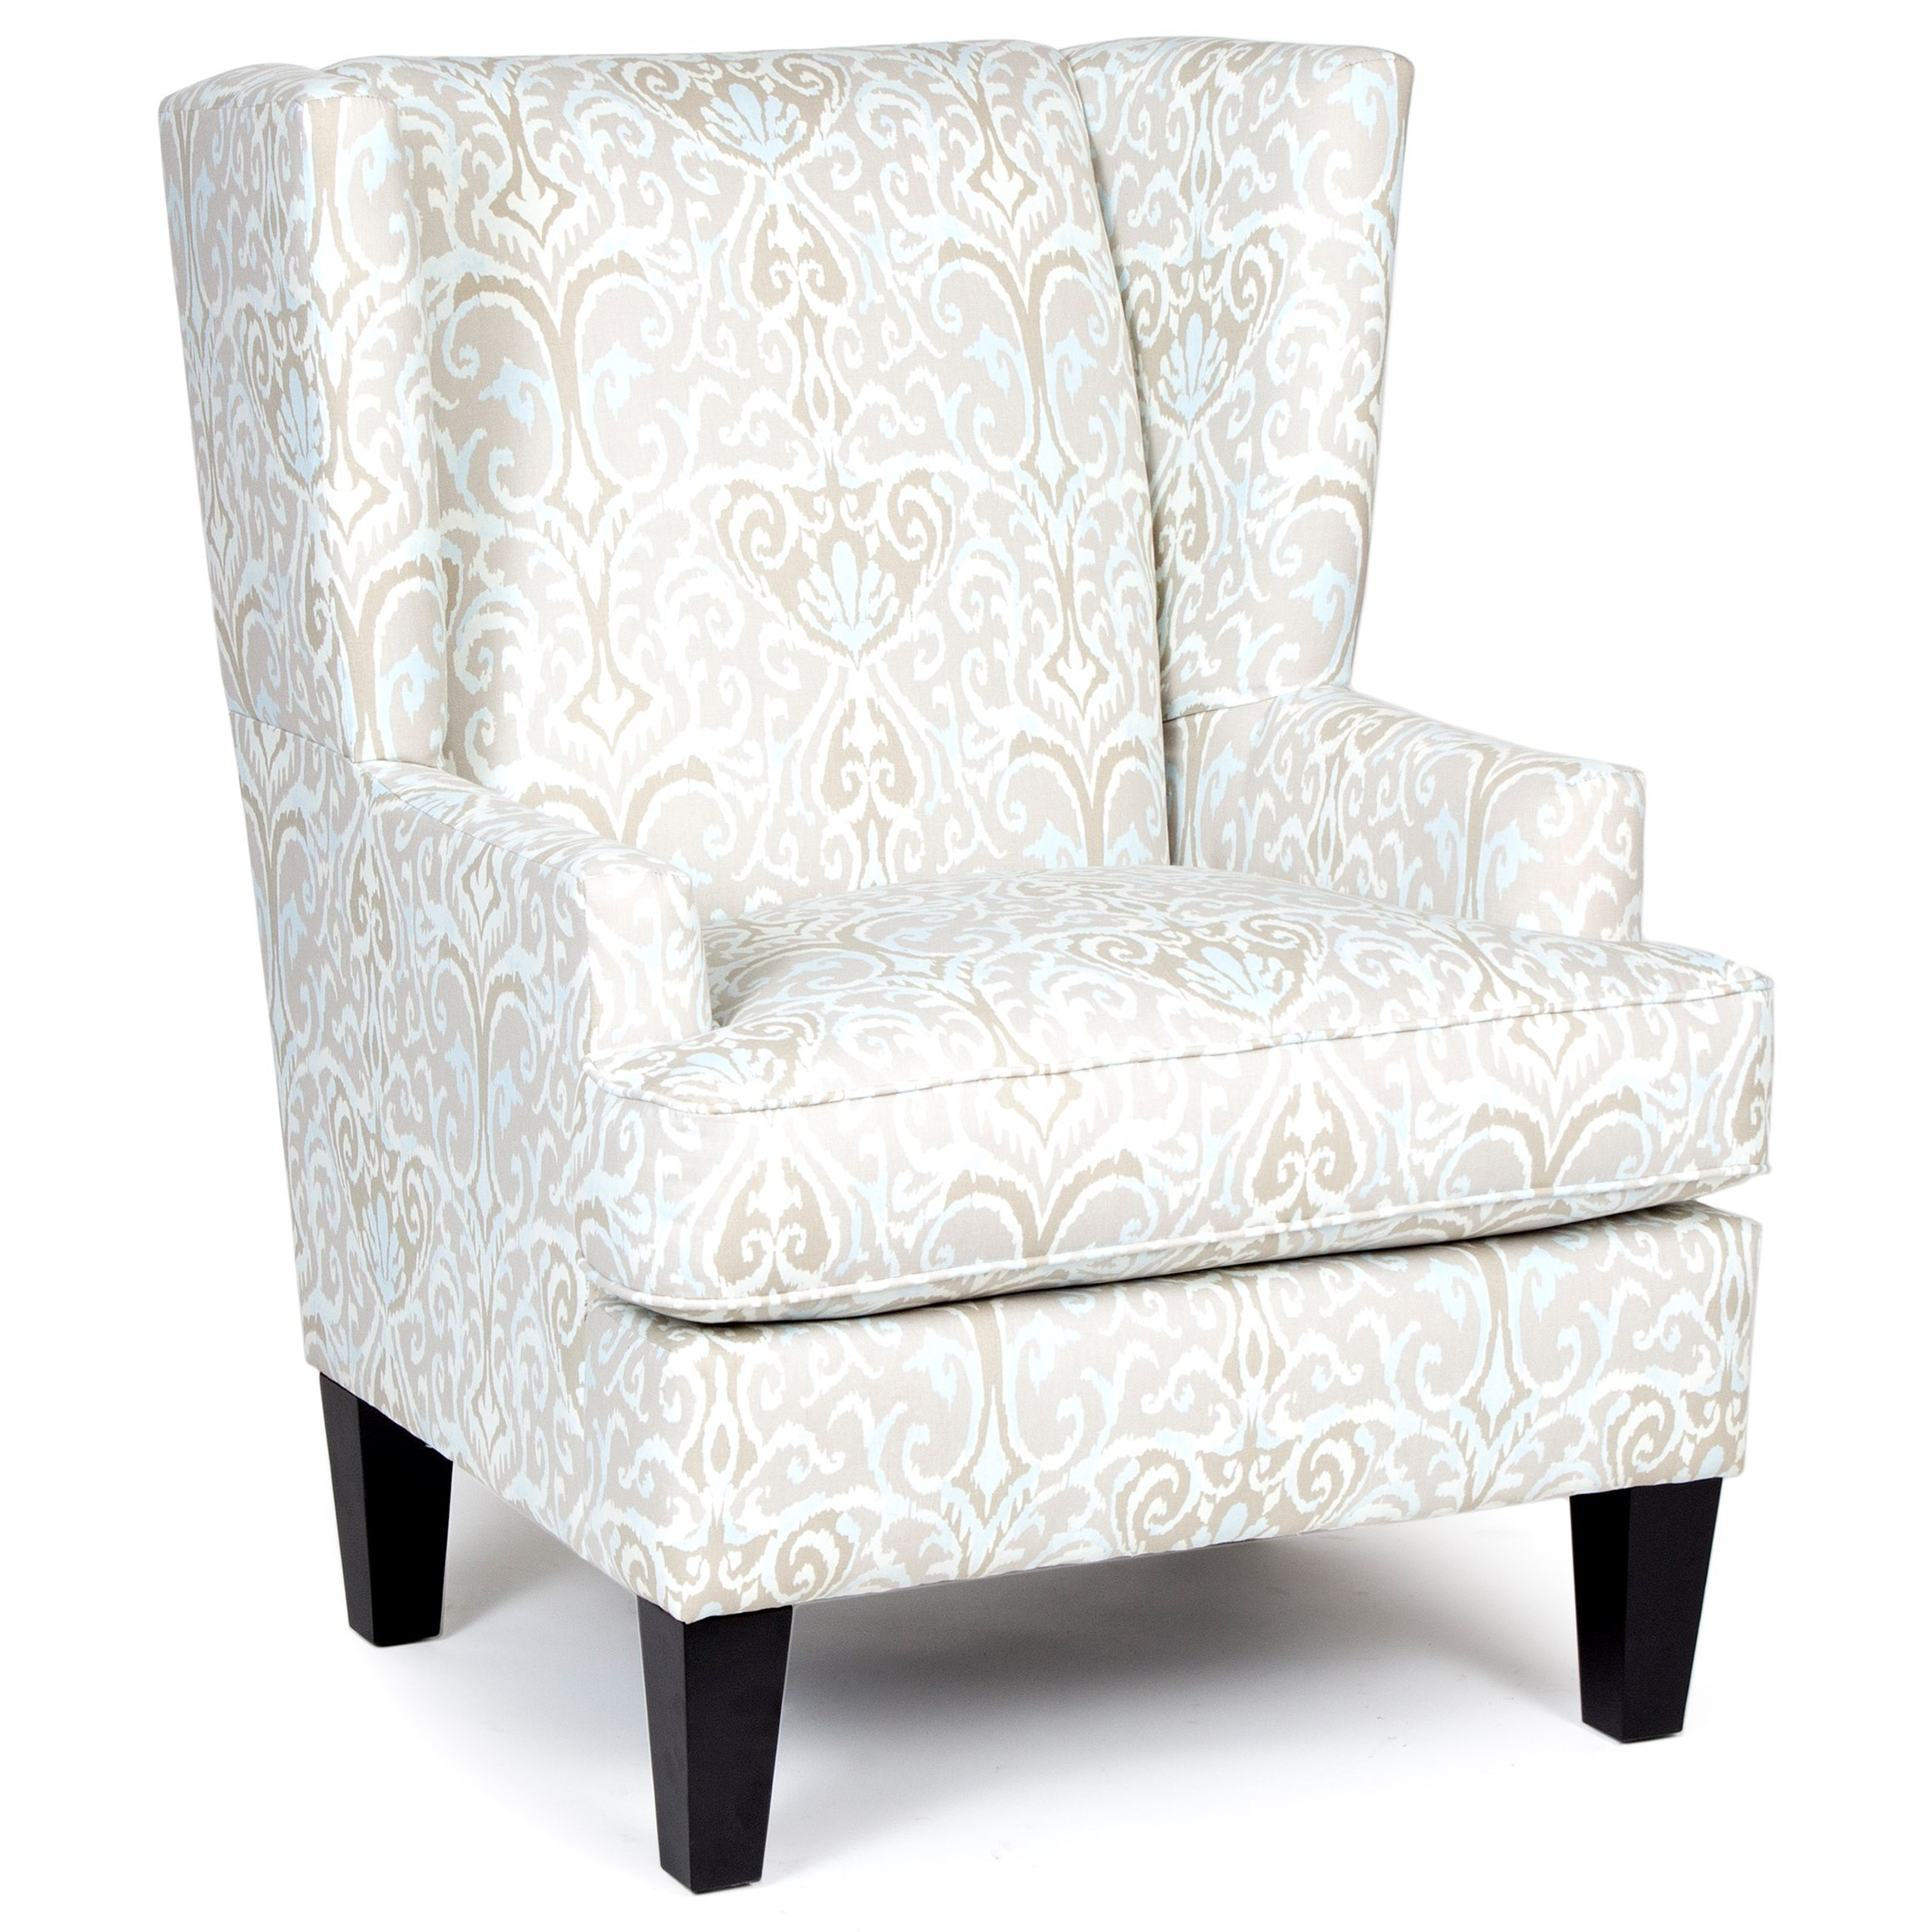 Chairs America Accent Chairs And Ottomans Transitional Wing Chair With  Tapered Legs